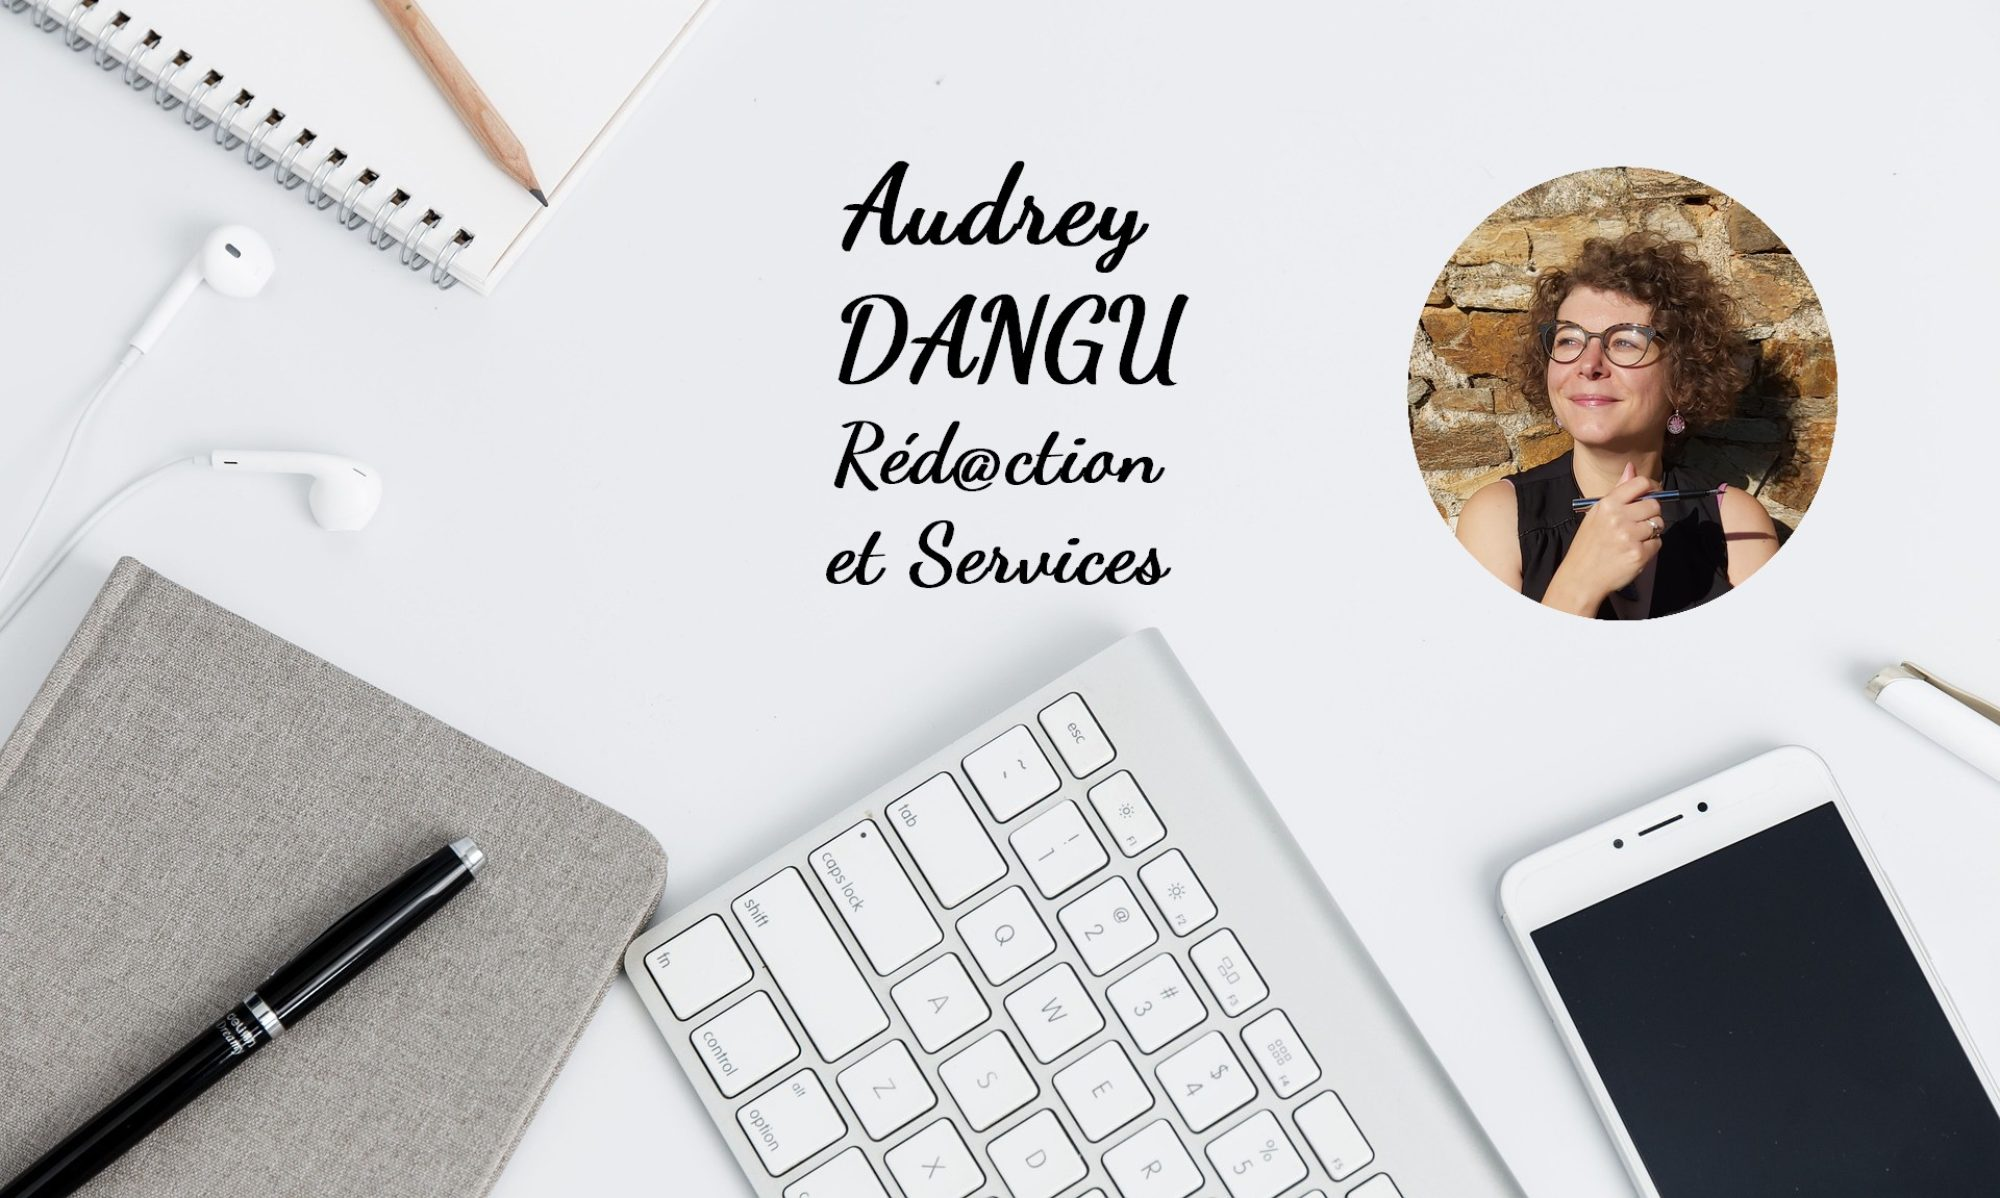 Audrey DANGU : Réd@ction et services